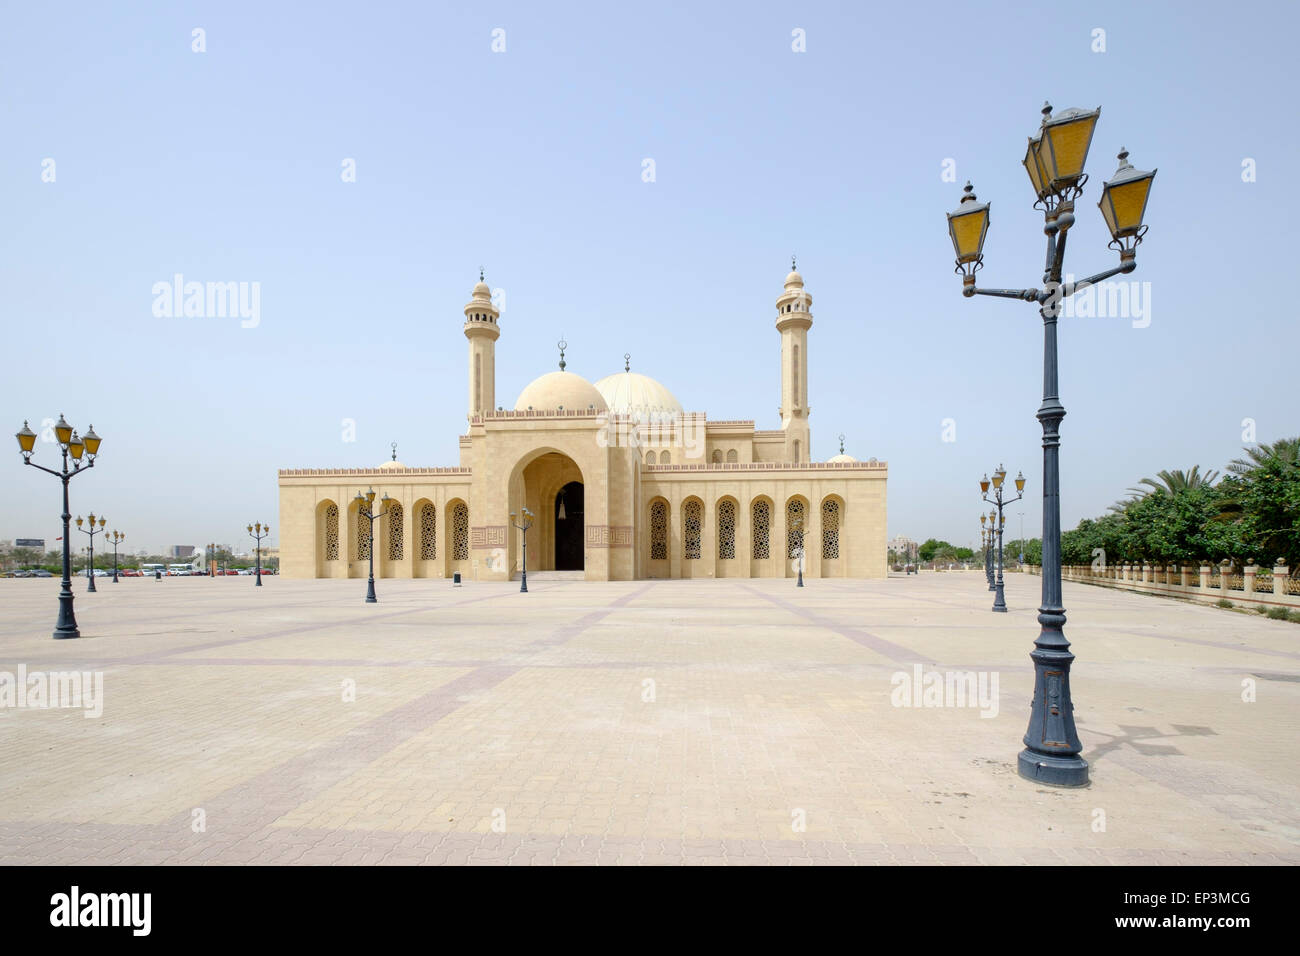 Exterior view of Al Fateh Grand Mosque in Kingdom of Bahrain - Stock Image